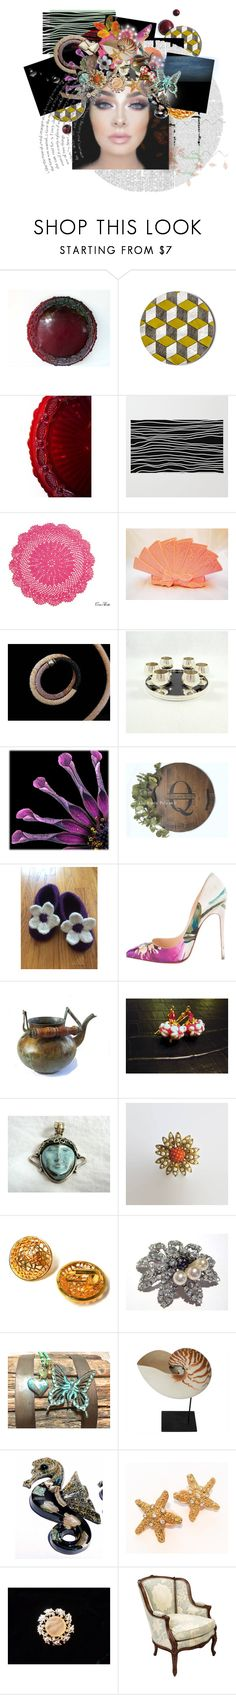 """let go"" by seasidecollectibles ❤ liked on Polyvore featuring Avon, Gorham, Christian Louboutin and vintage"